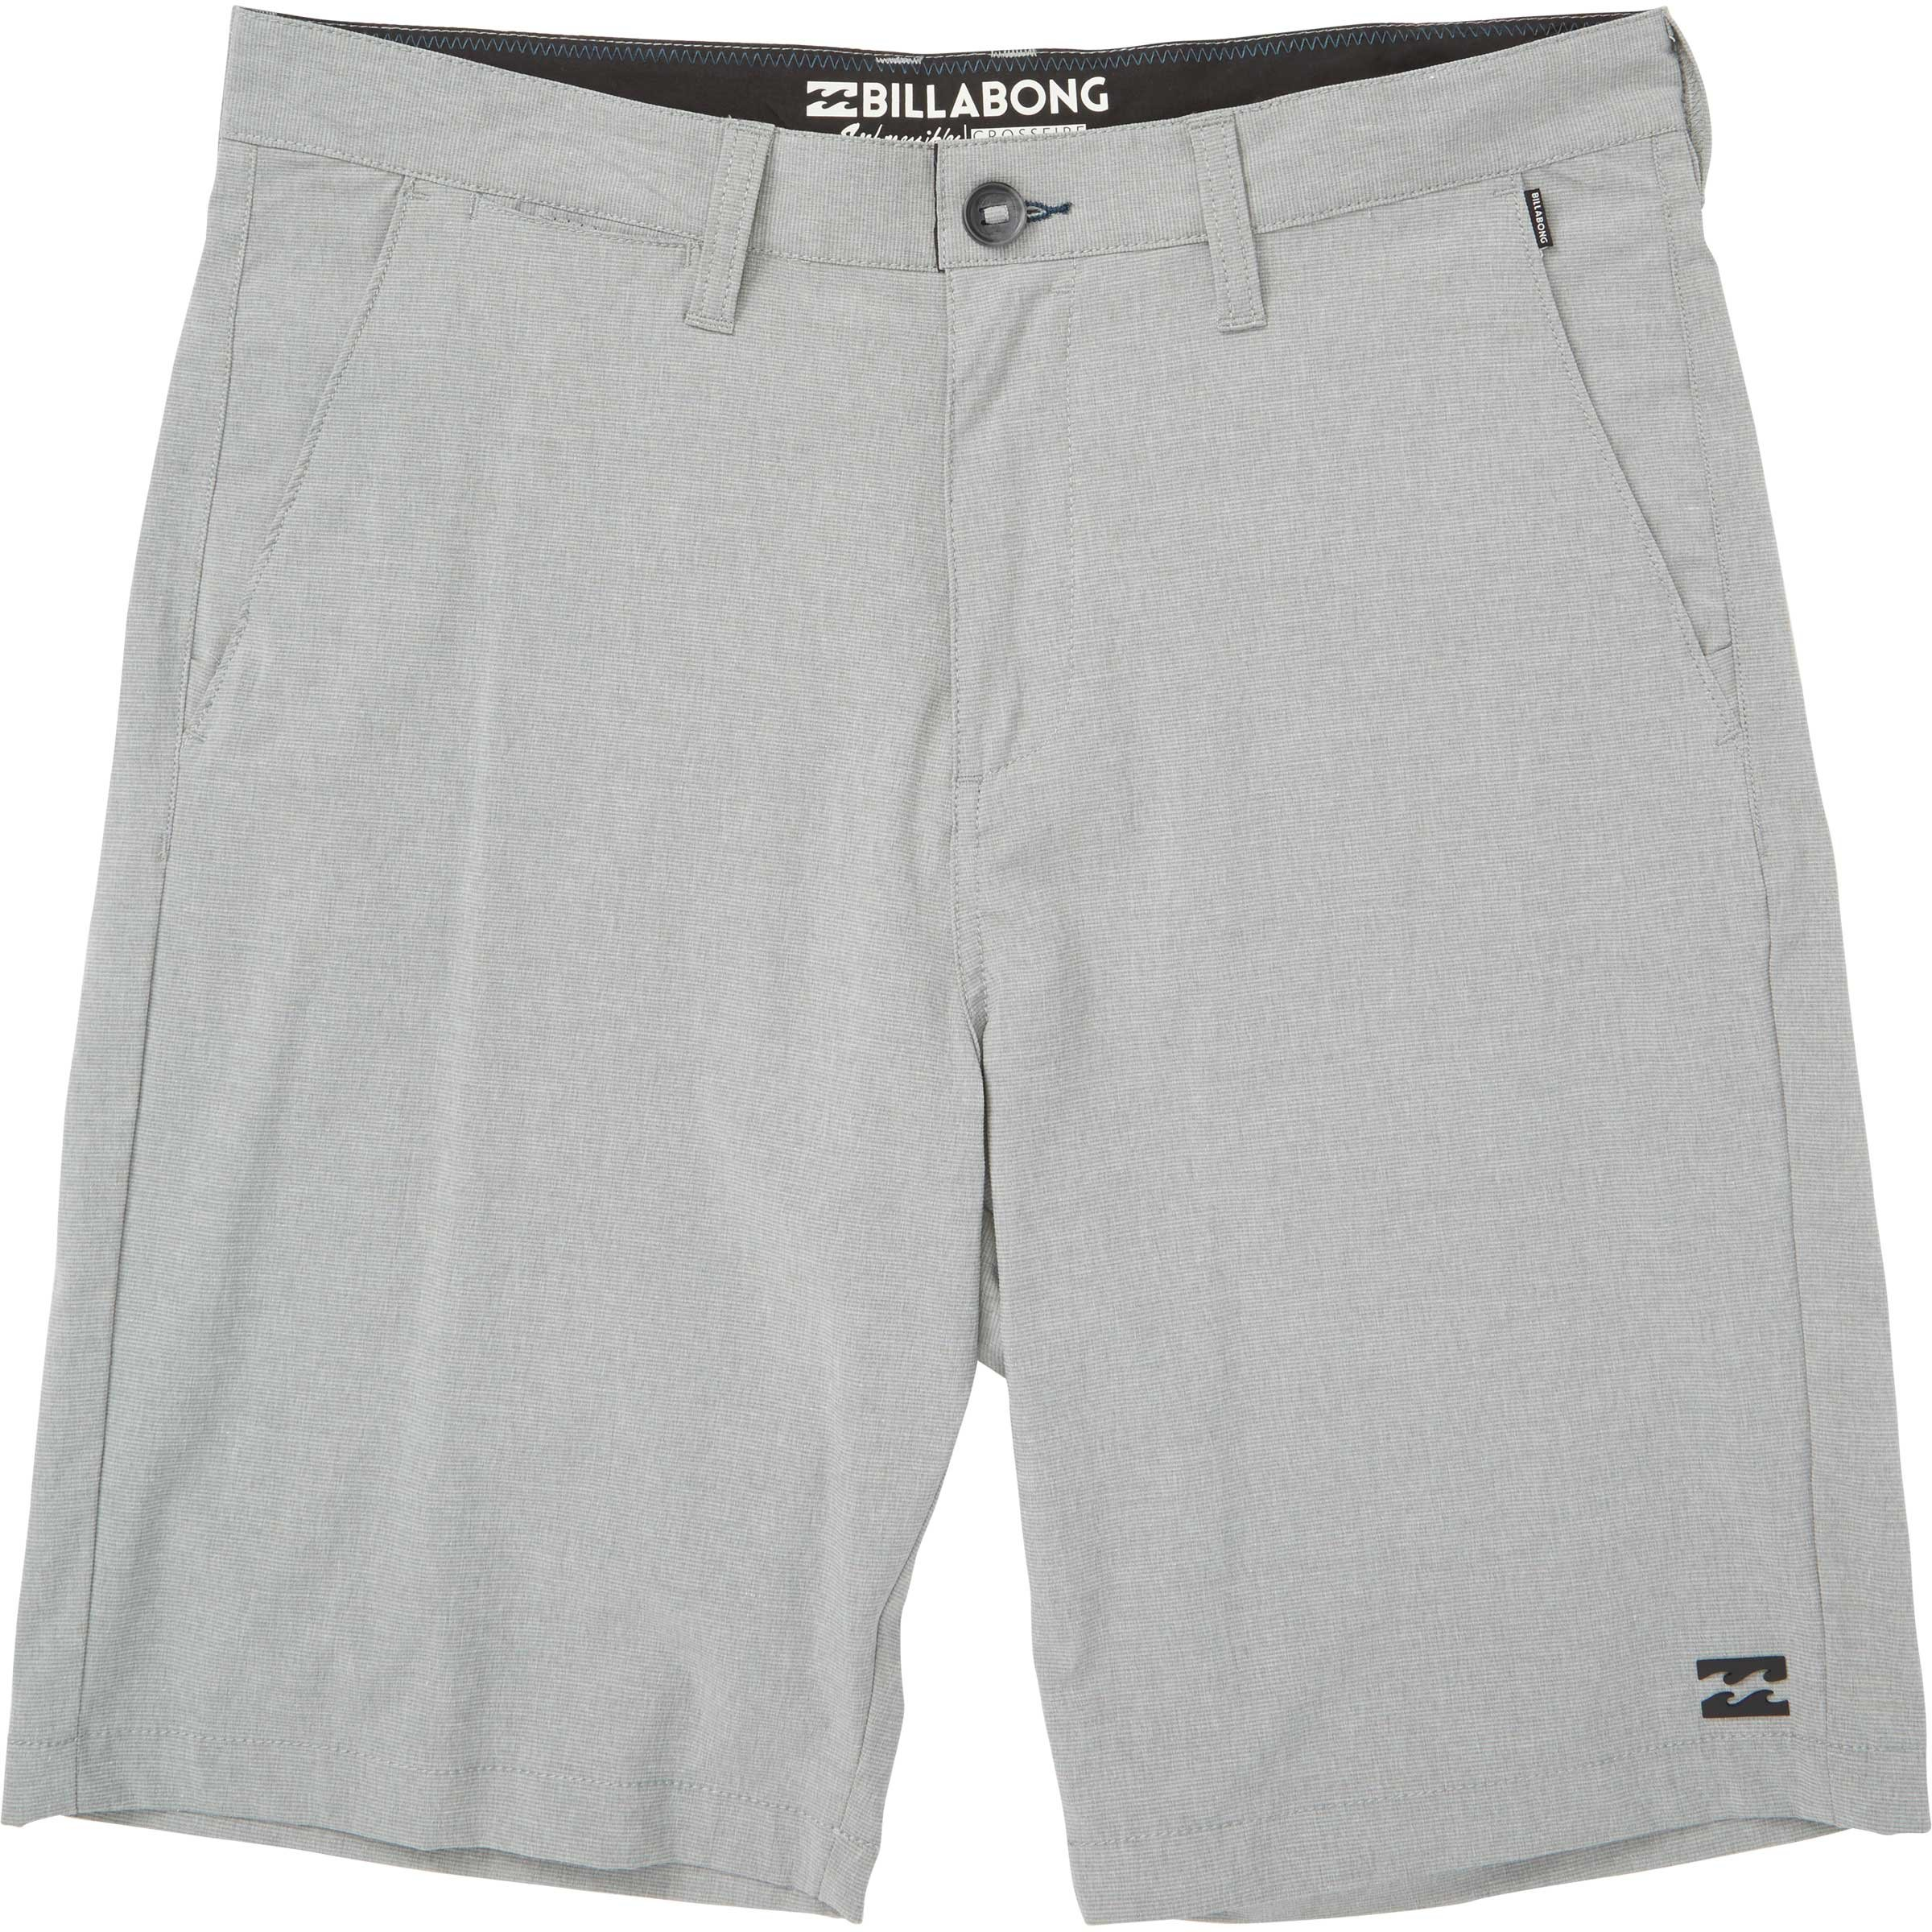 Billabong Men's Crossfire X Walkshort, Grey, 32